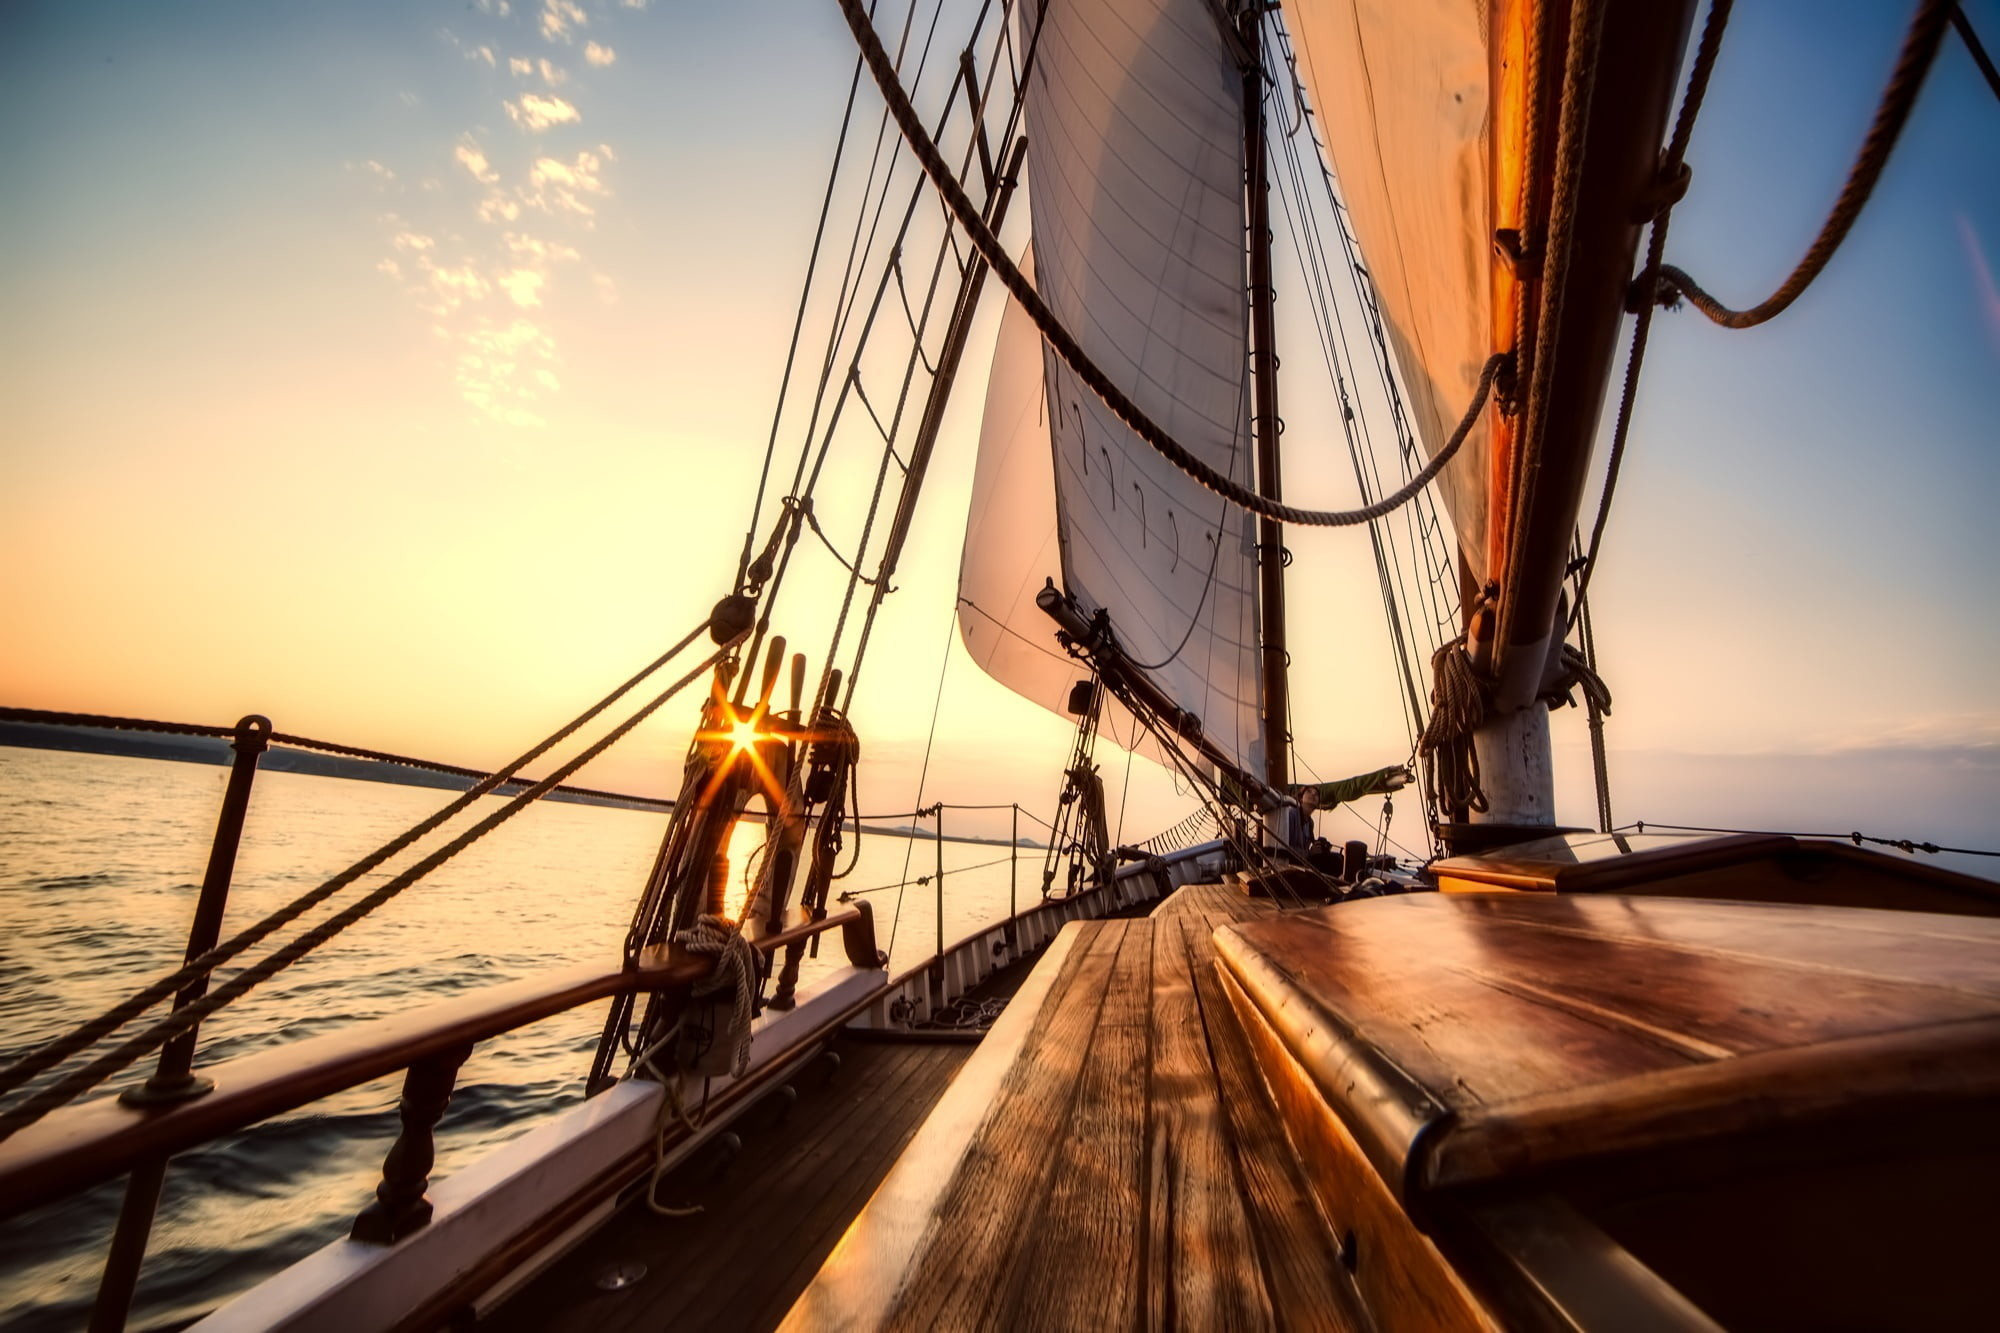 2000x1333 Sailing Wallpaper HD